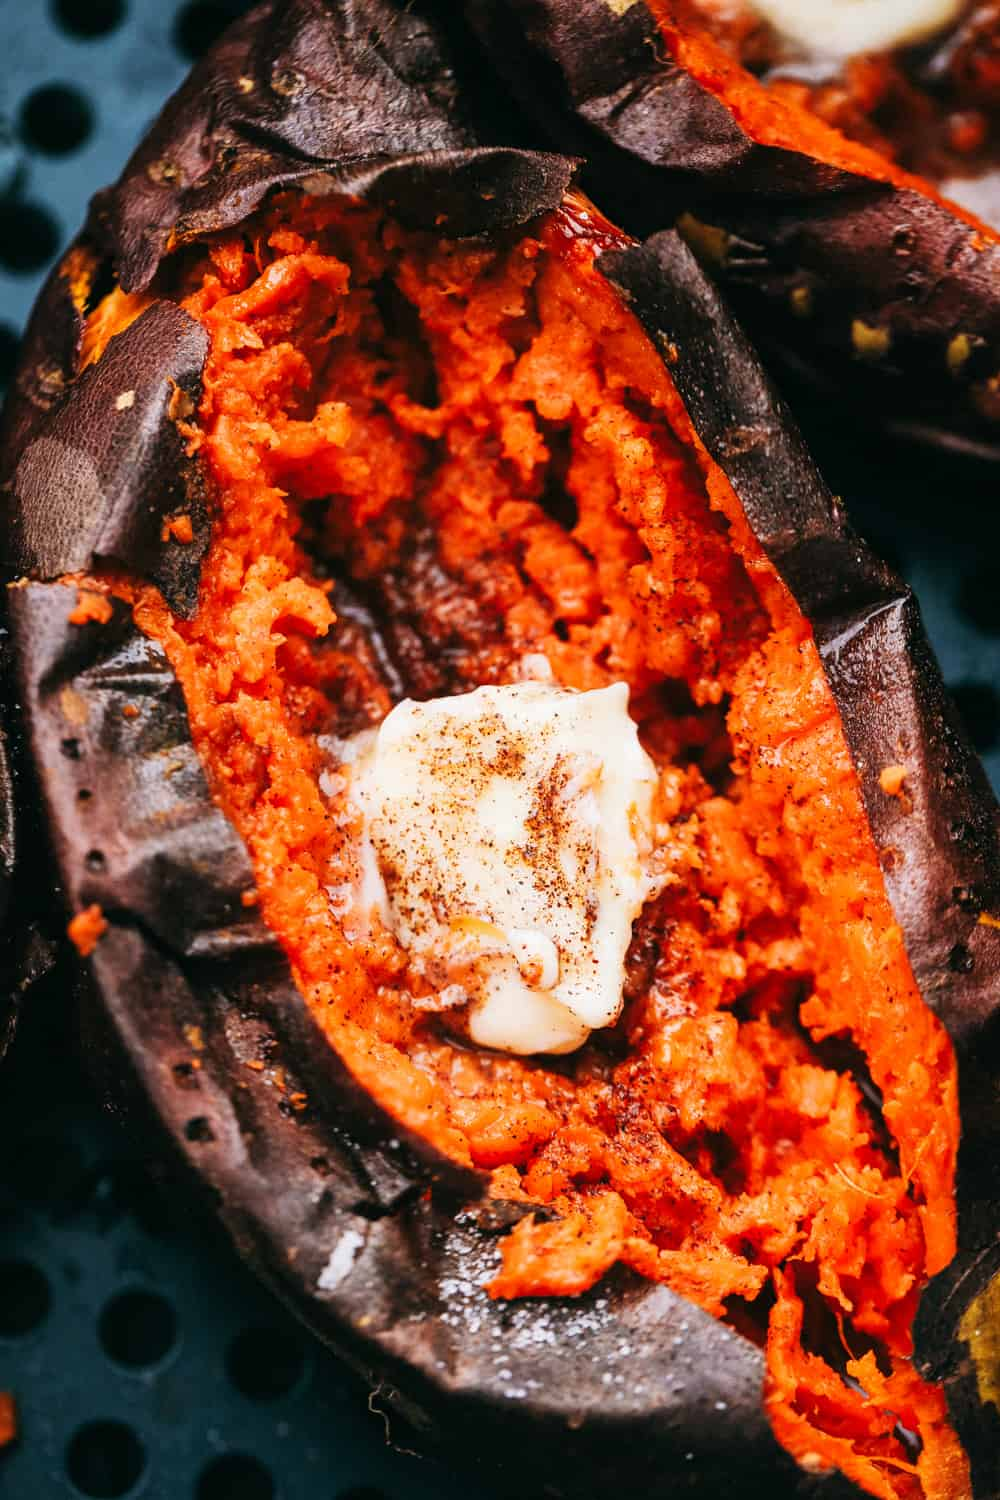 Creamy inside, perfectly roasted Sweet Potatoes